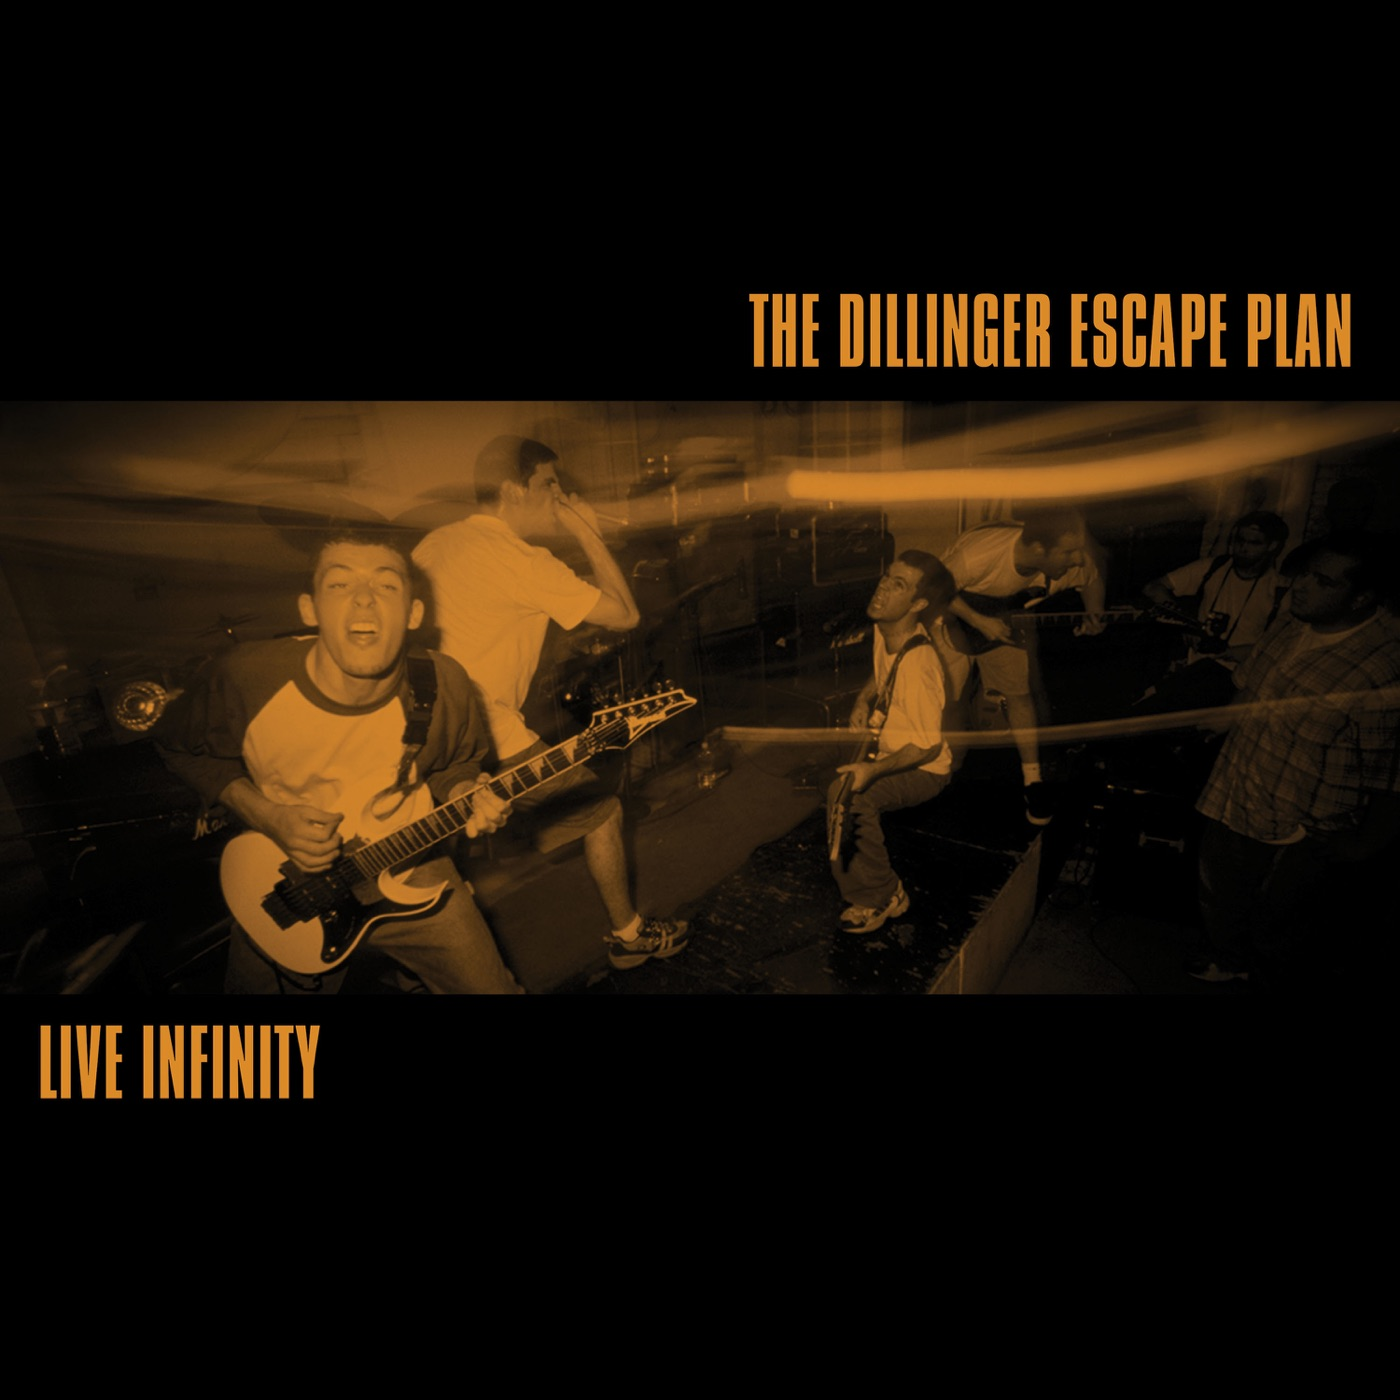 The Dillinger Escape Plan - Live Infinity (2019)